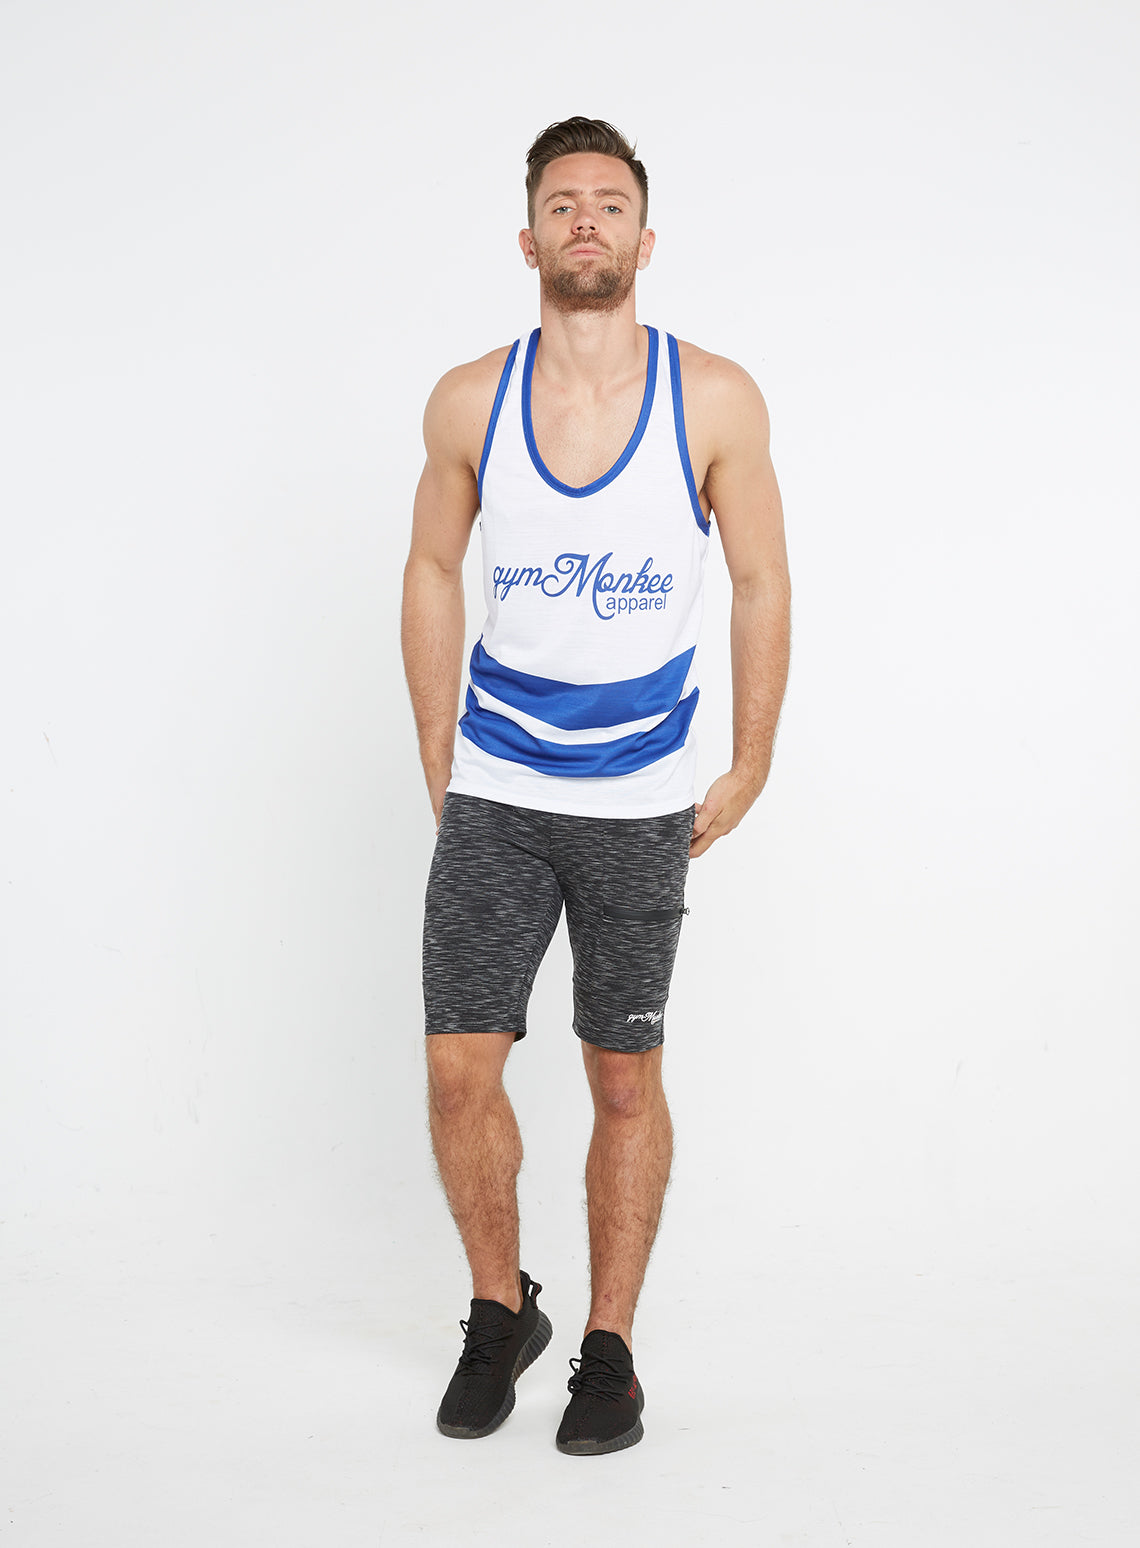 477267f6c10b4 Gym Monkee - Blue and White Sublimated Vest MOVING